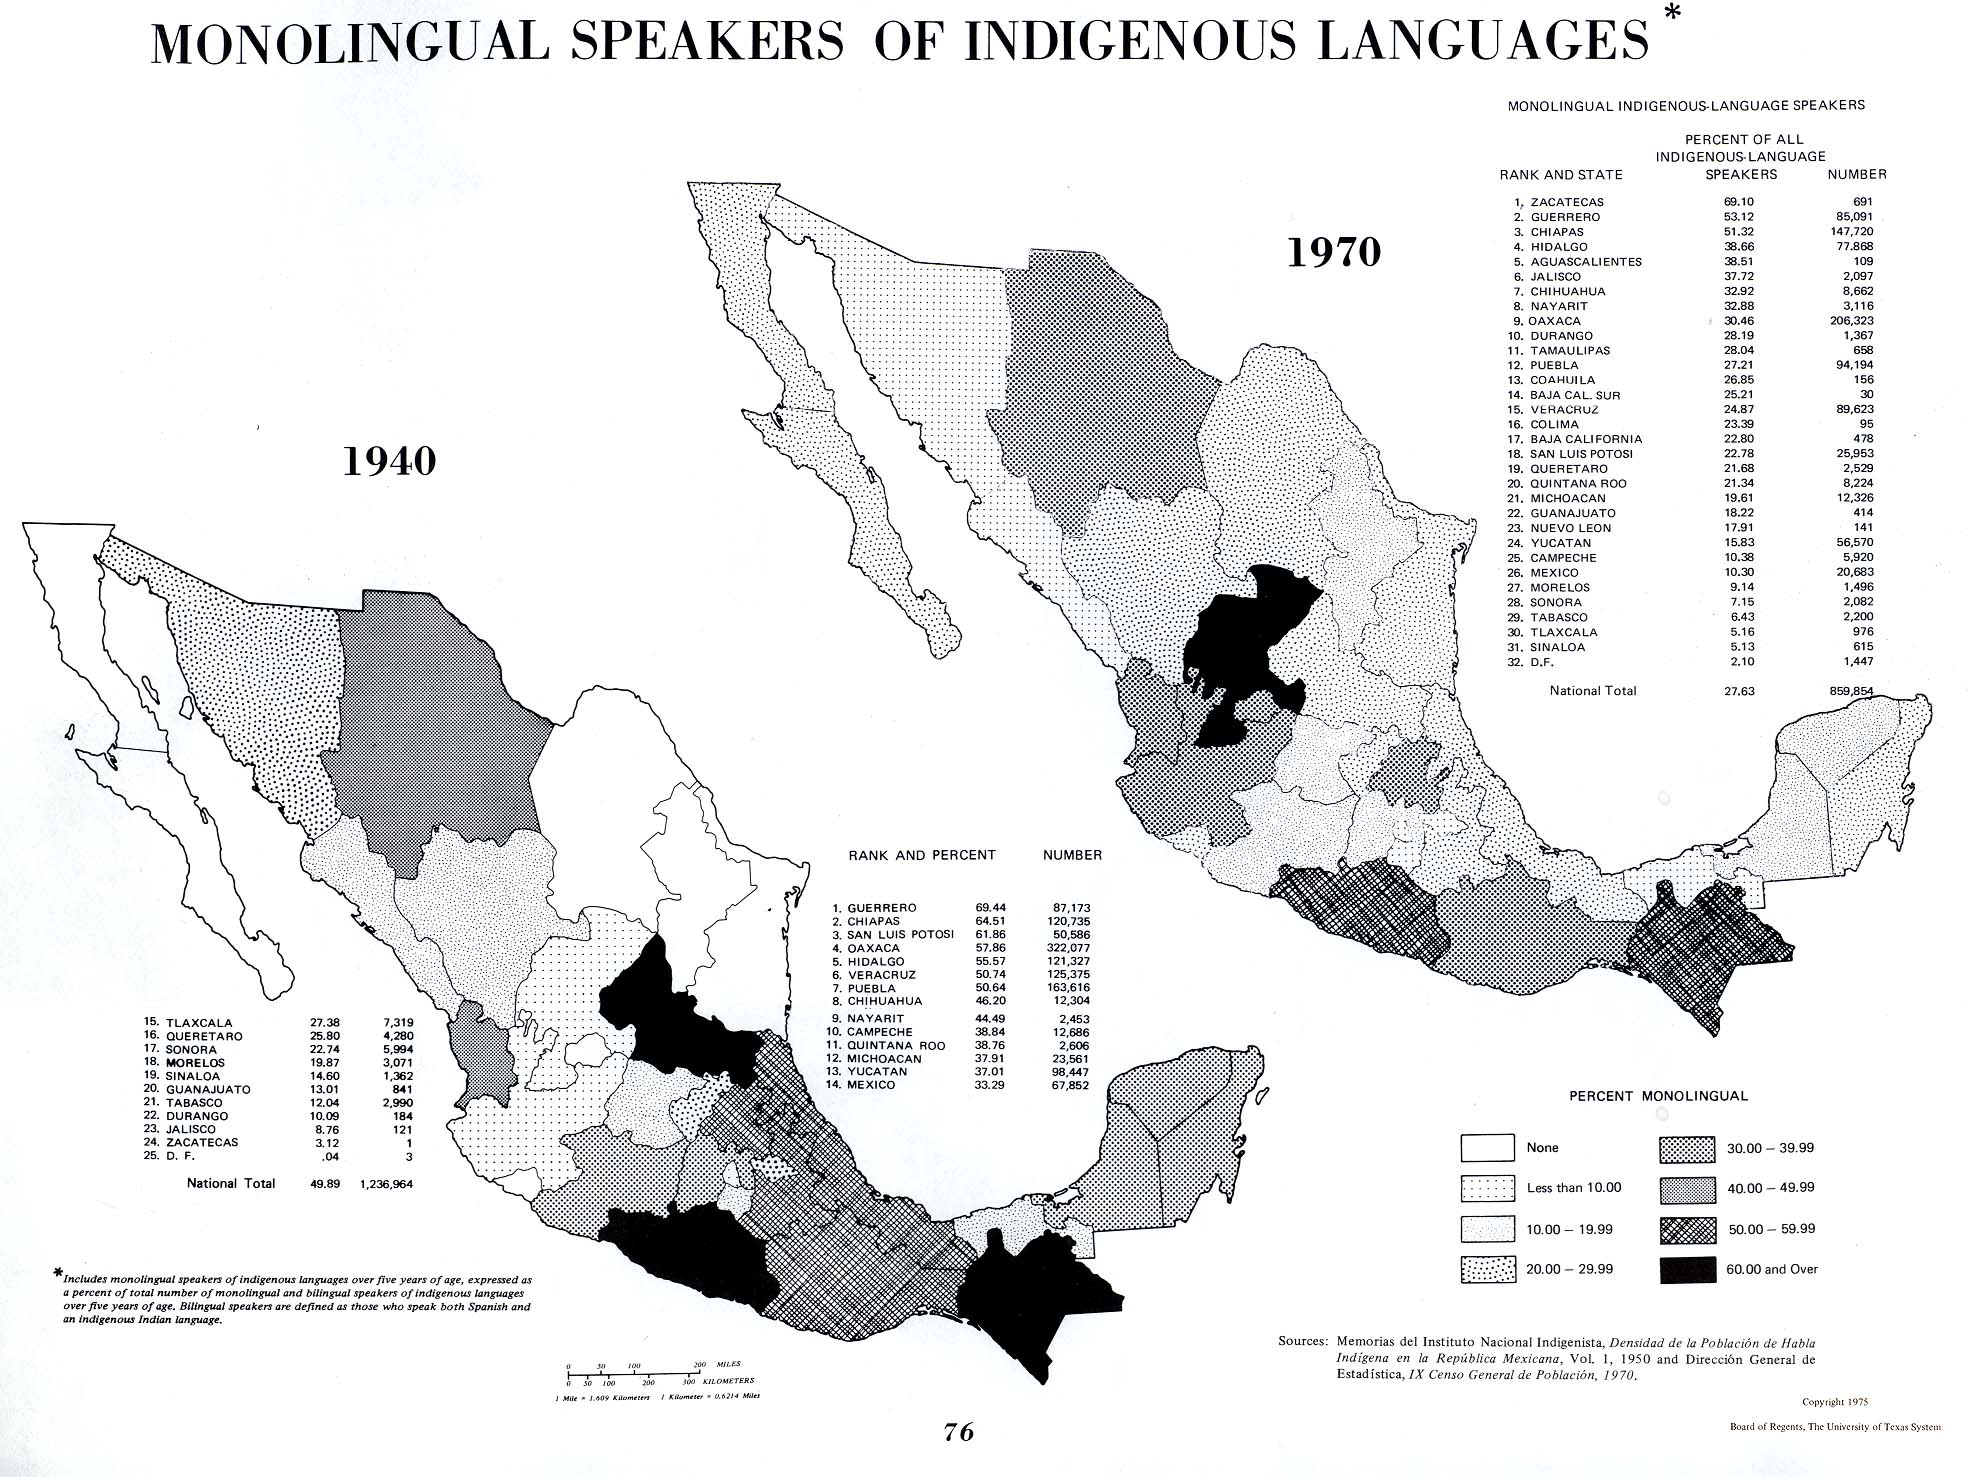 Monolingual Speakers of Indigenous Languages, Mexico 1940, 1970